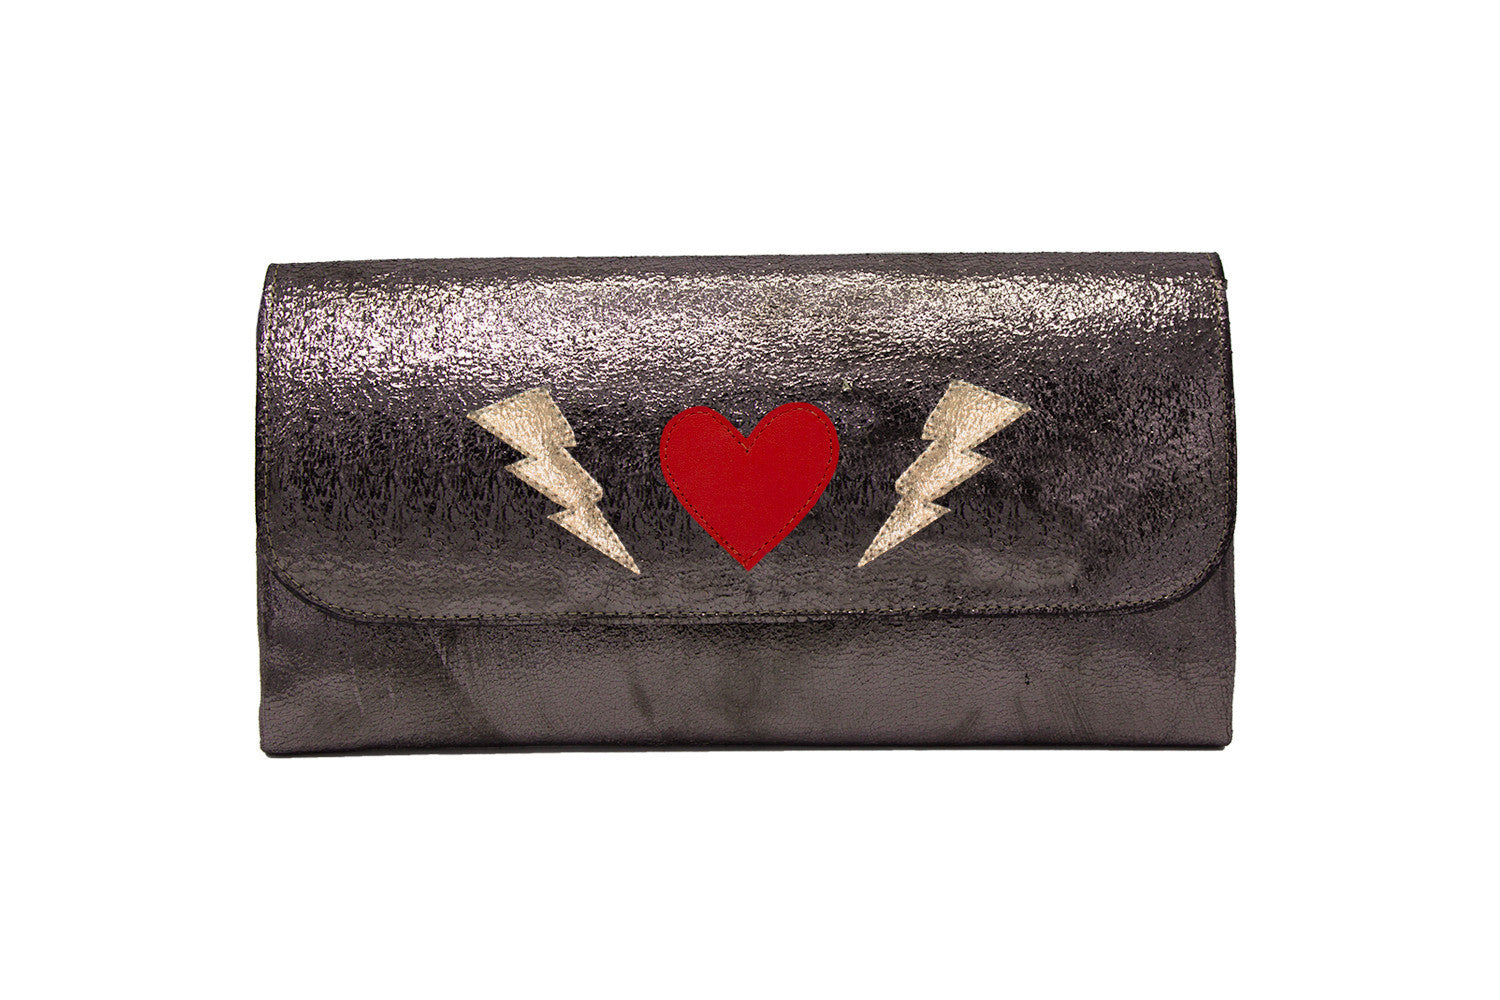 Elle Clutch Cracked Bronze Patent Leather w/ Gold Bolt, Red Heart and Gold Bolt